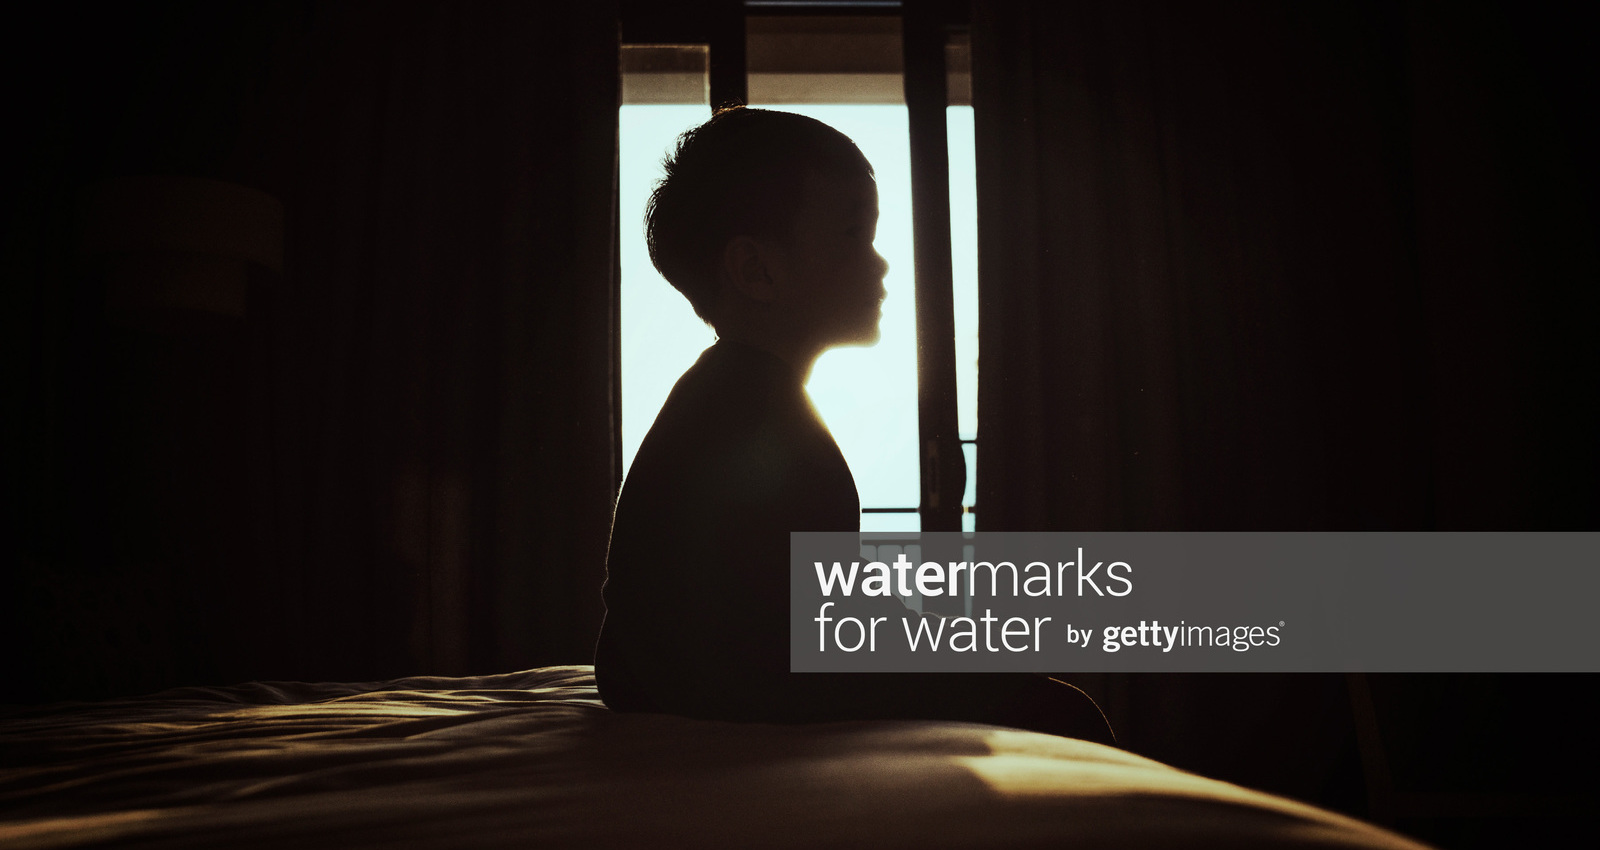 Watermarks for Water